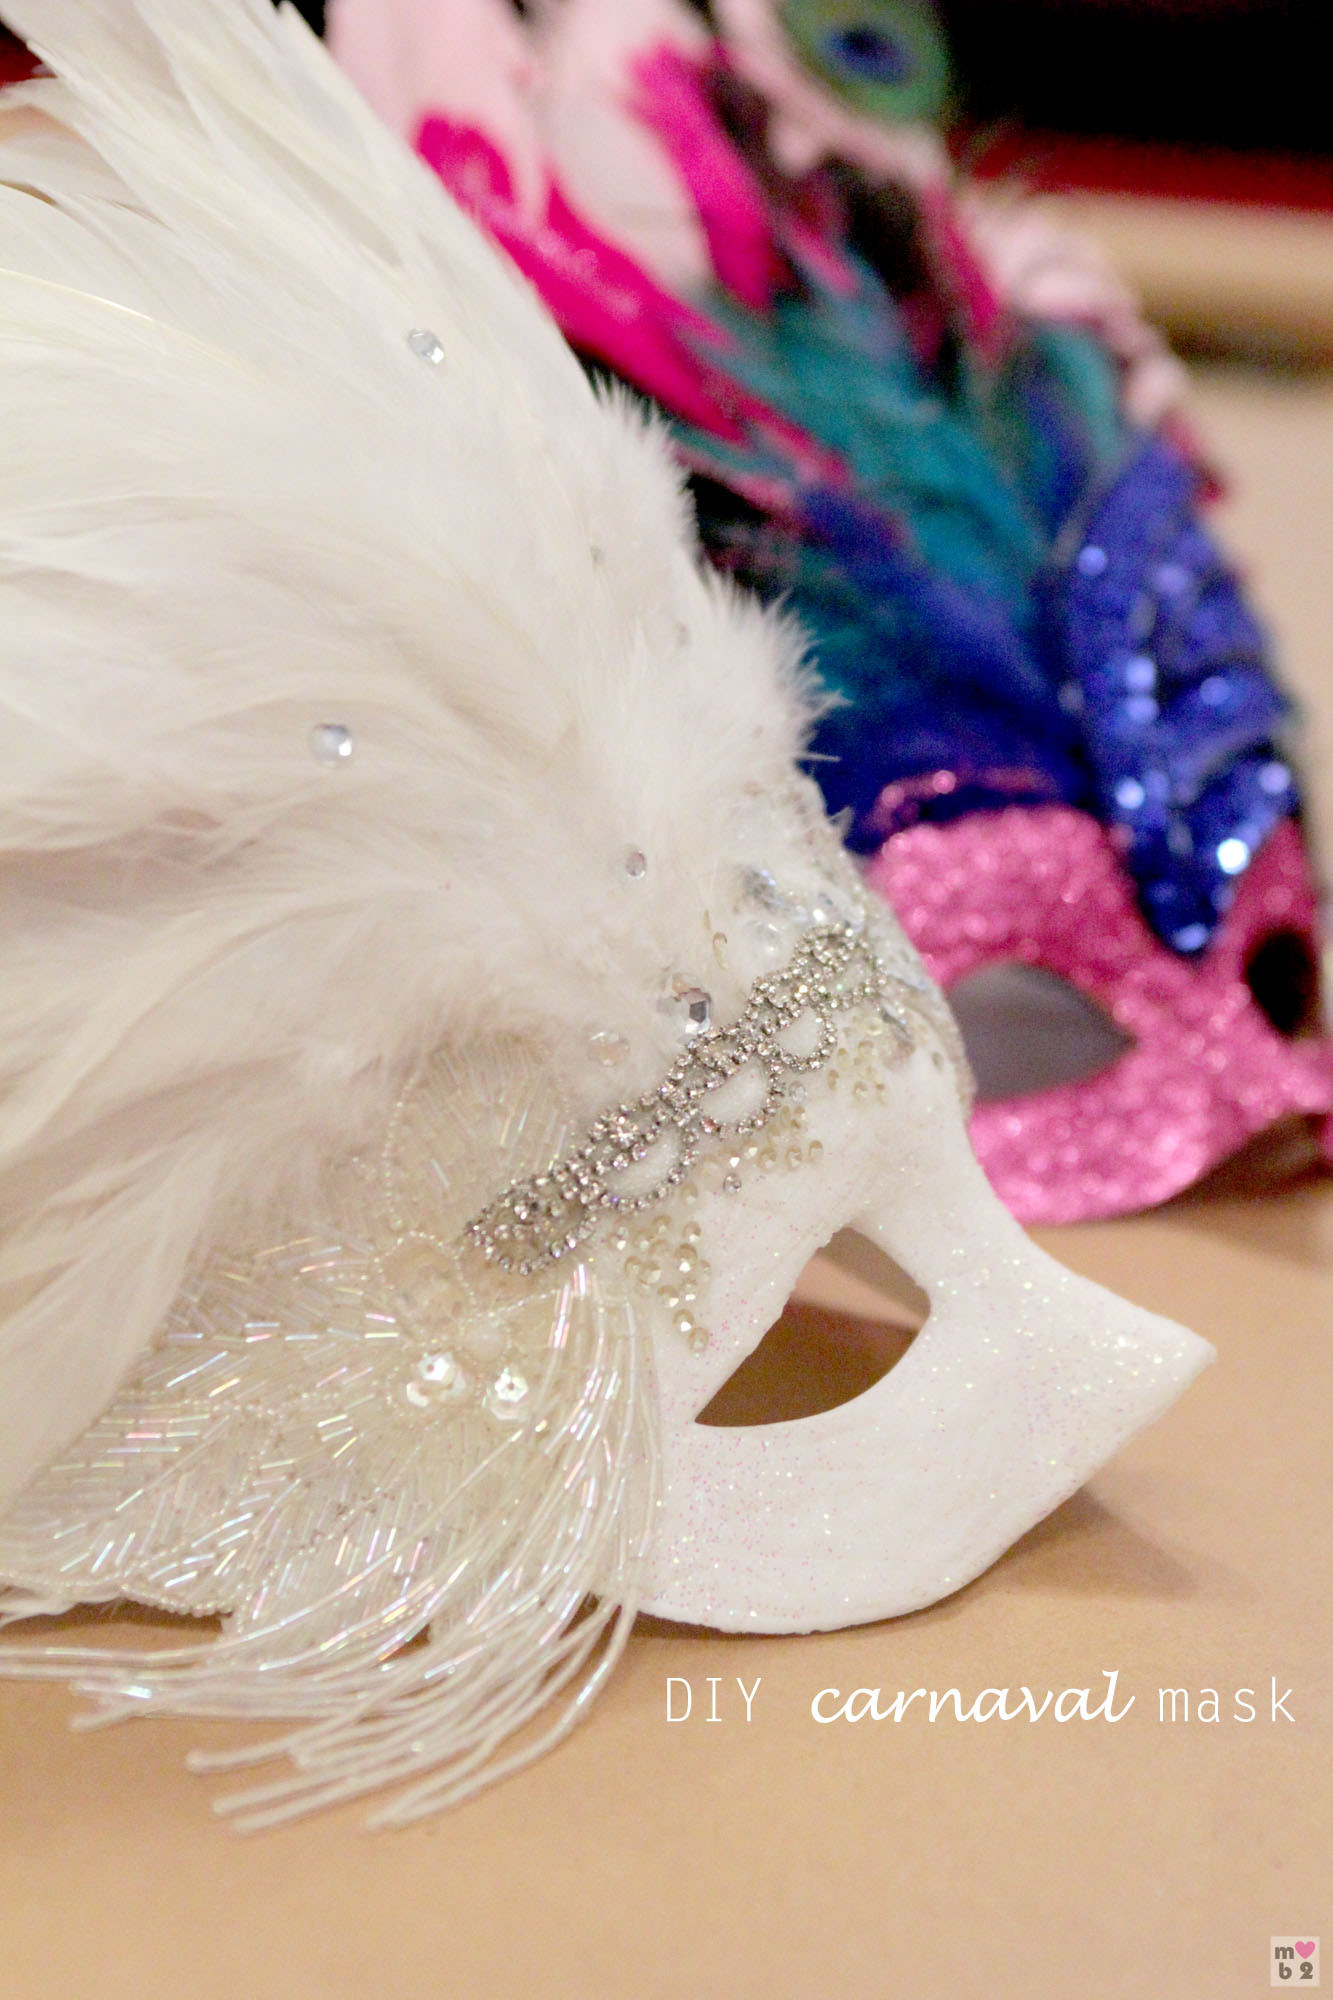 Best ideas about DIY Masquerade Masks . Save or Pin DIY Carnaval Mask Now.